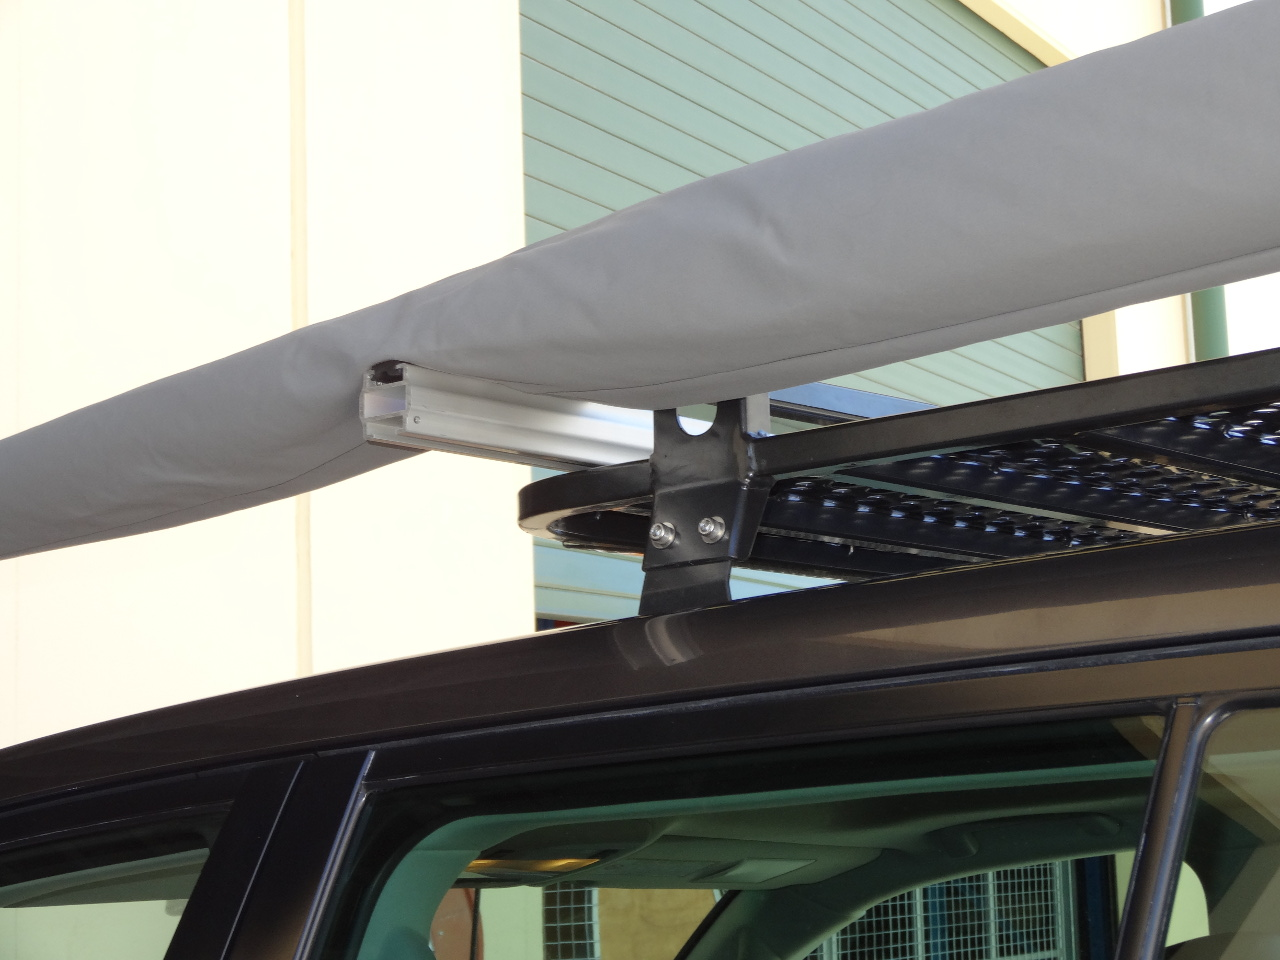 Vehicle awning convenient lightweight vehicle canopy